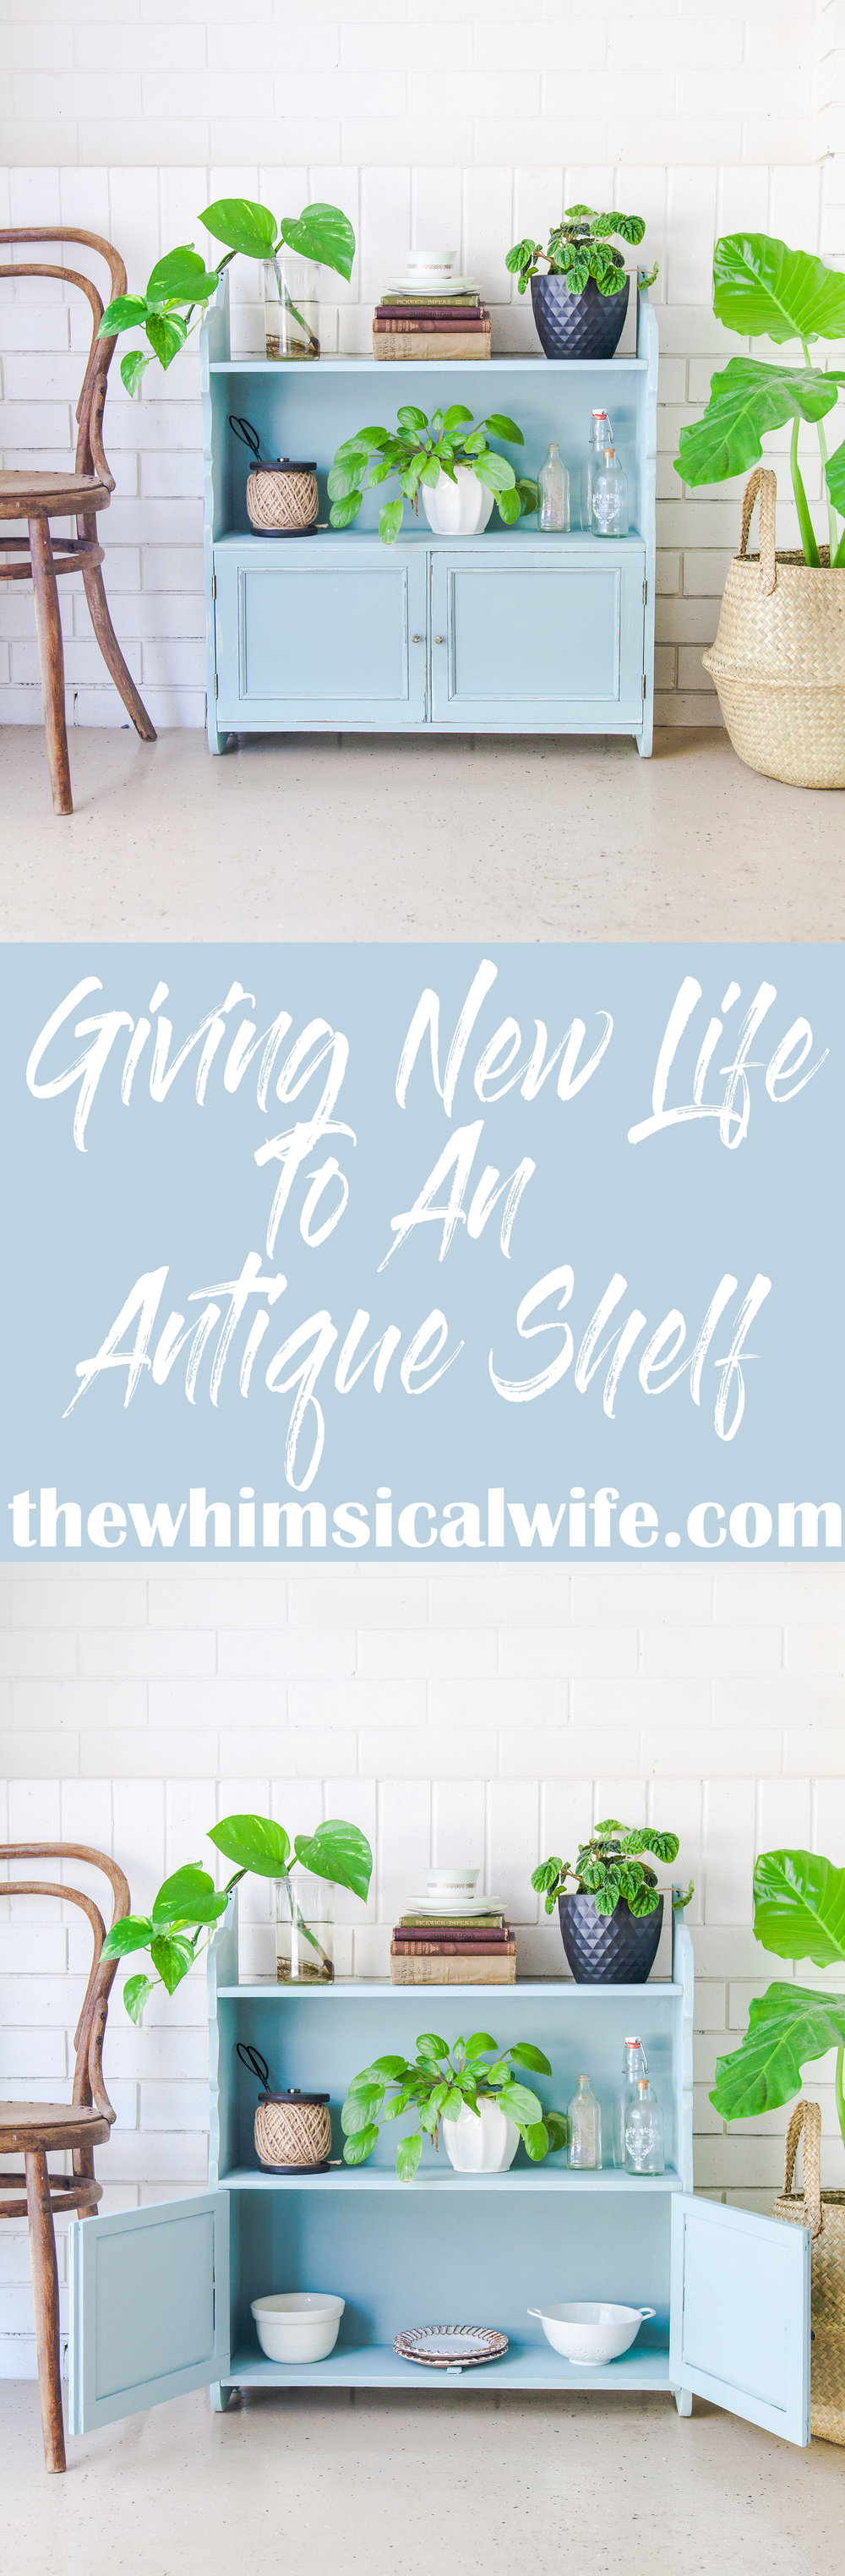 Giving New Life To A Antique Shelf | The Whimsical Wife